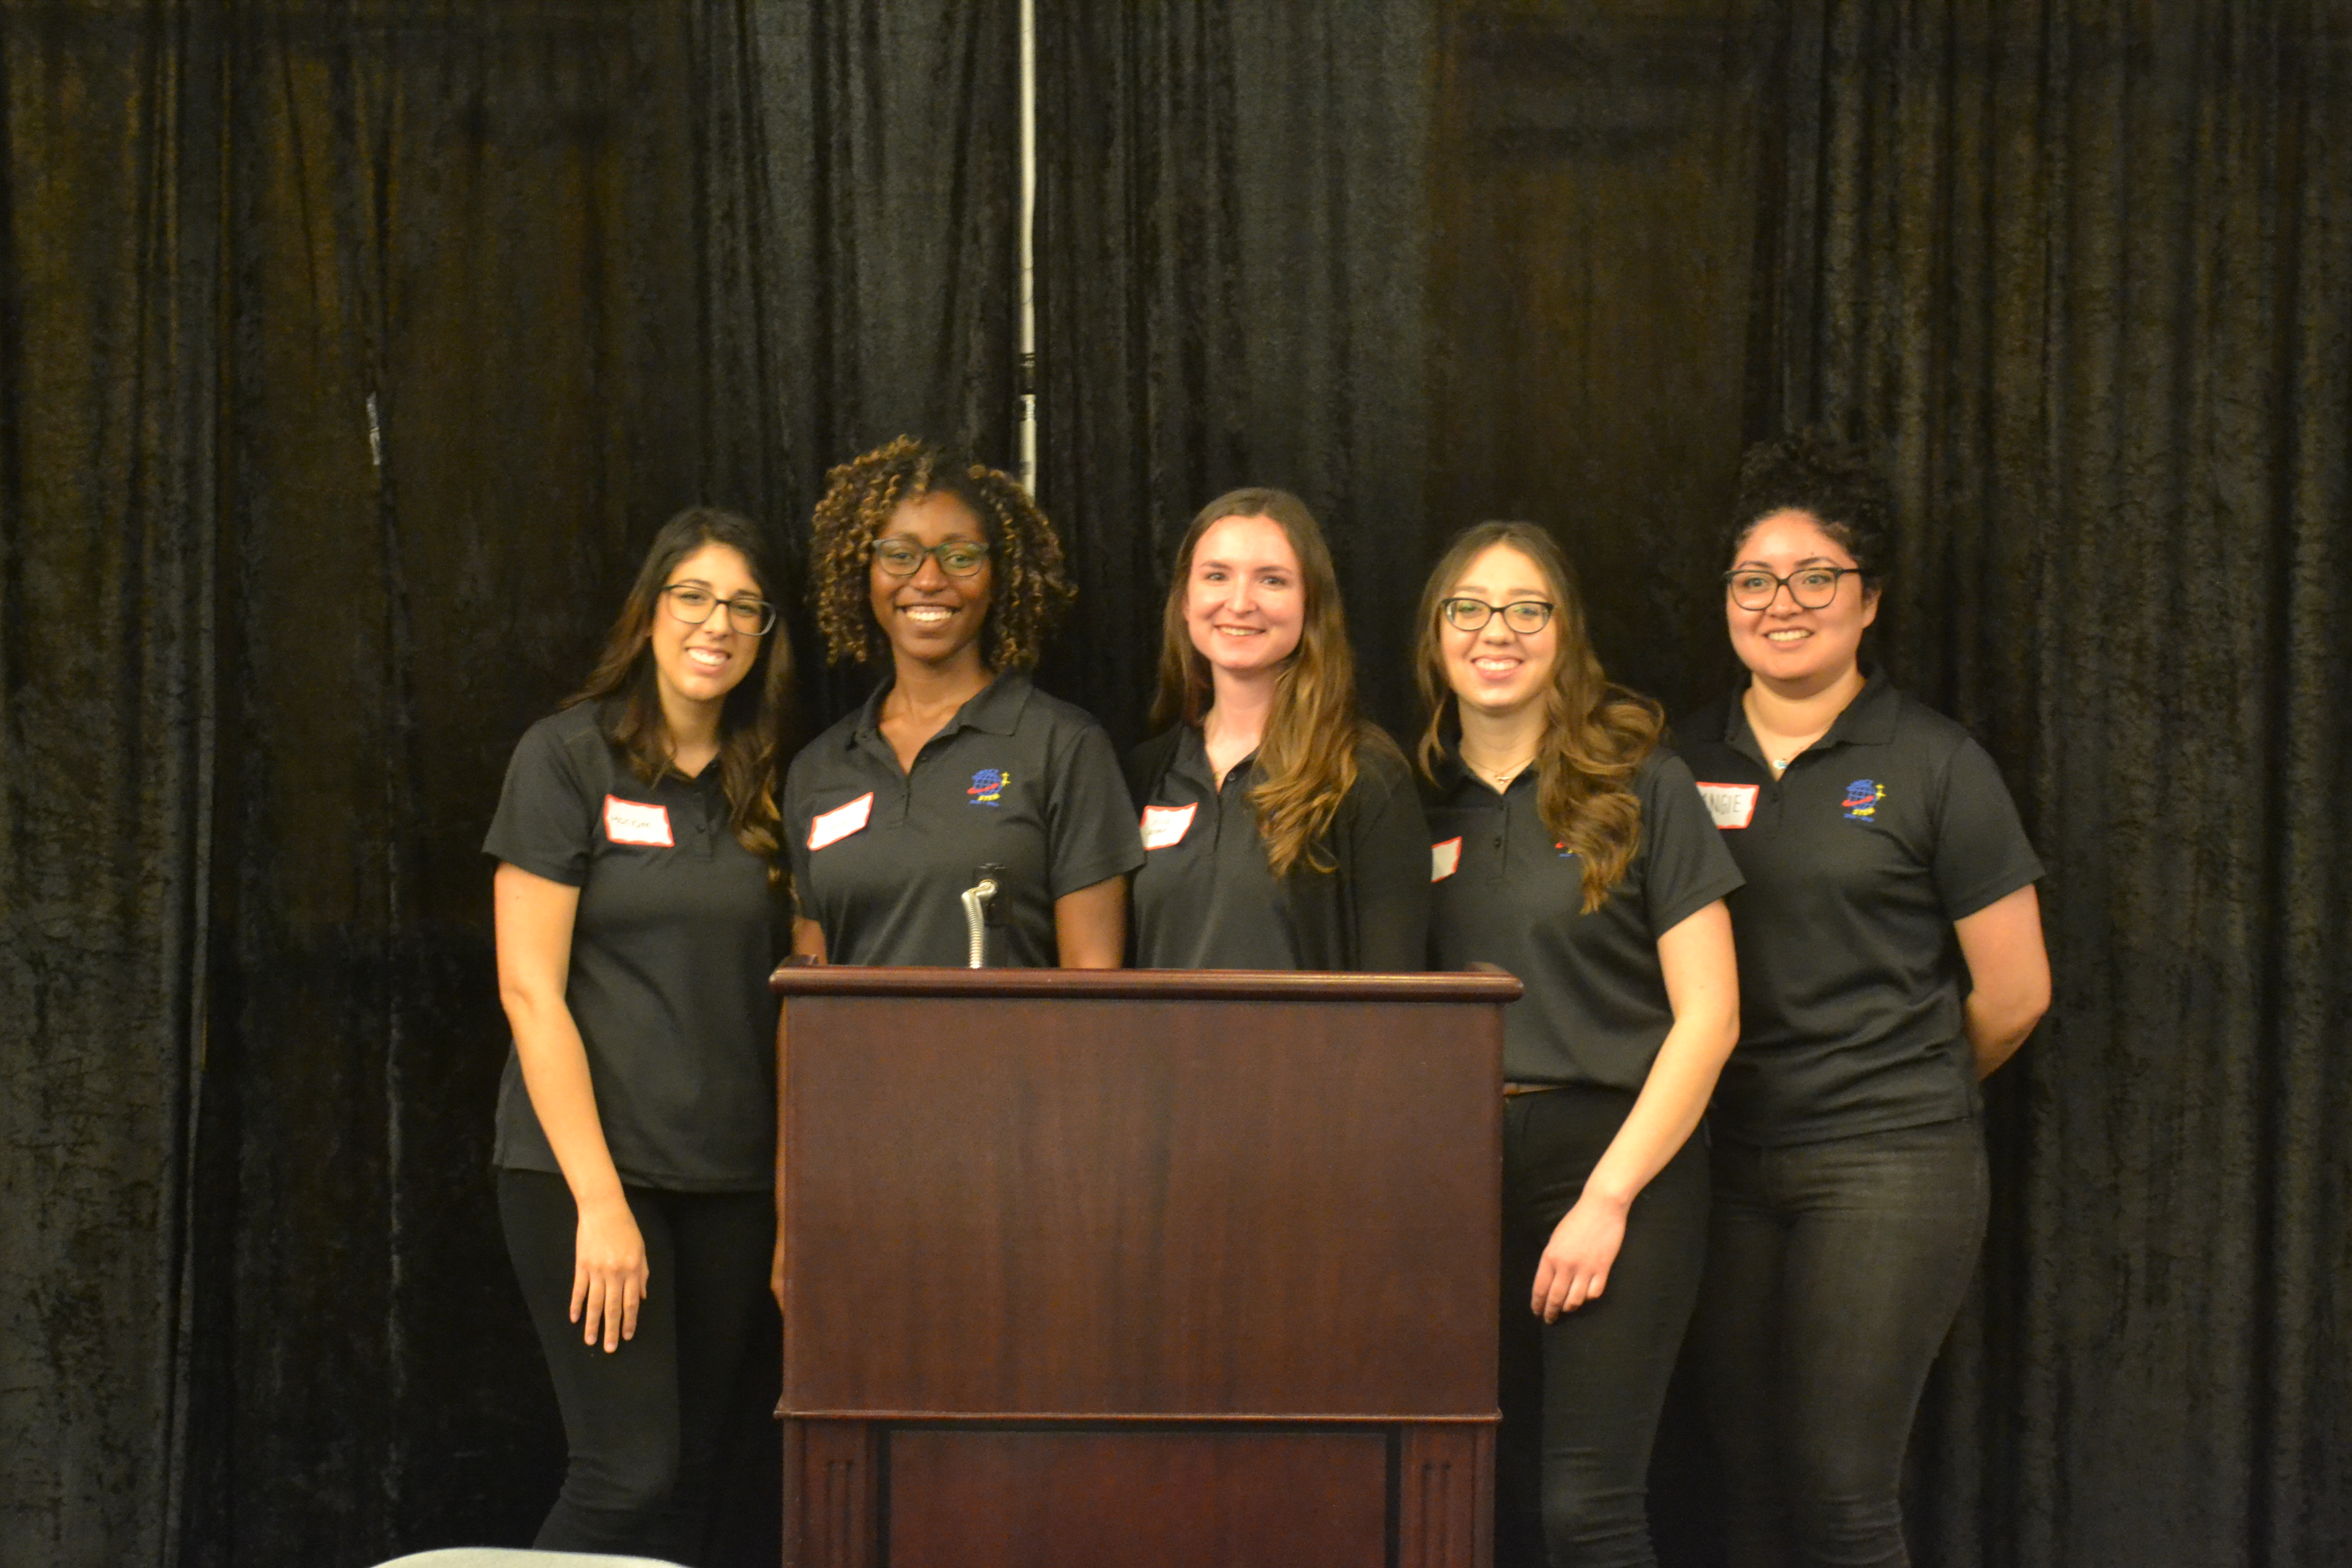 From left: Mariam Ayad, Sara Johnson, Jessica Kromer, Chelsy Salas and Angelica Enriquez